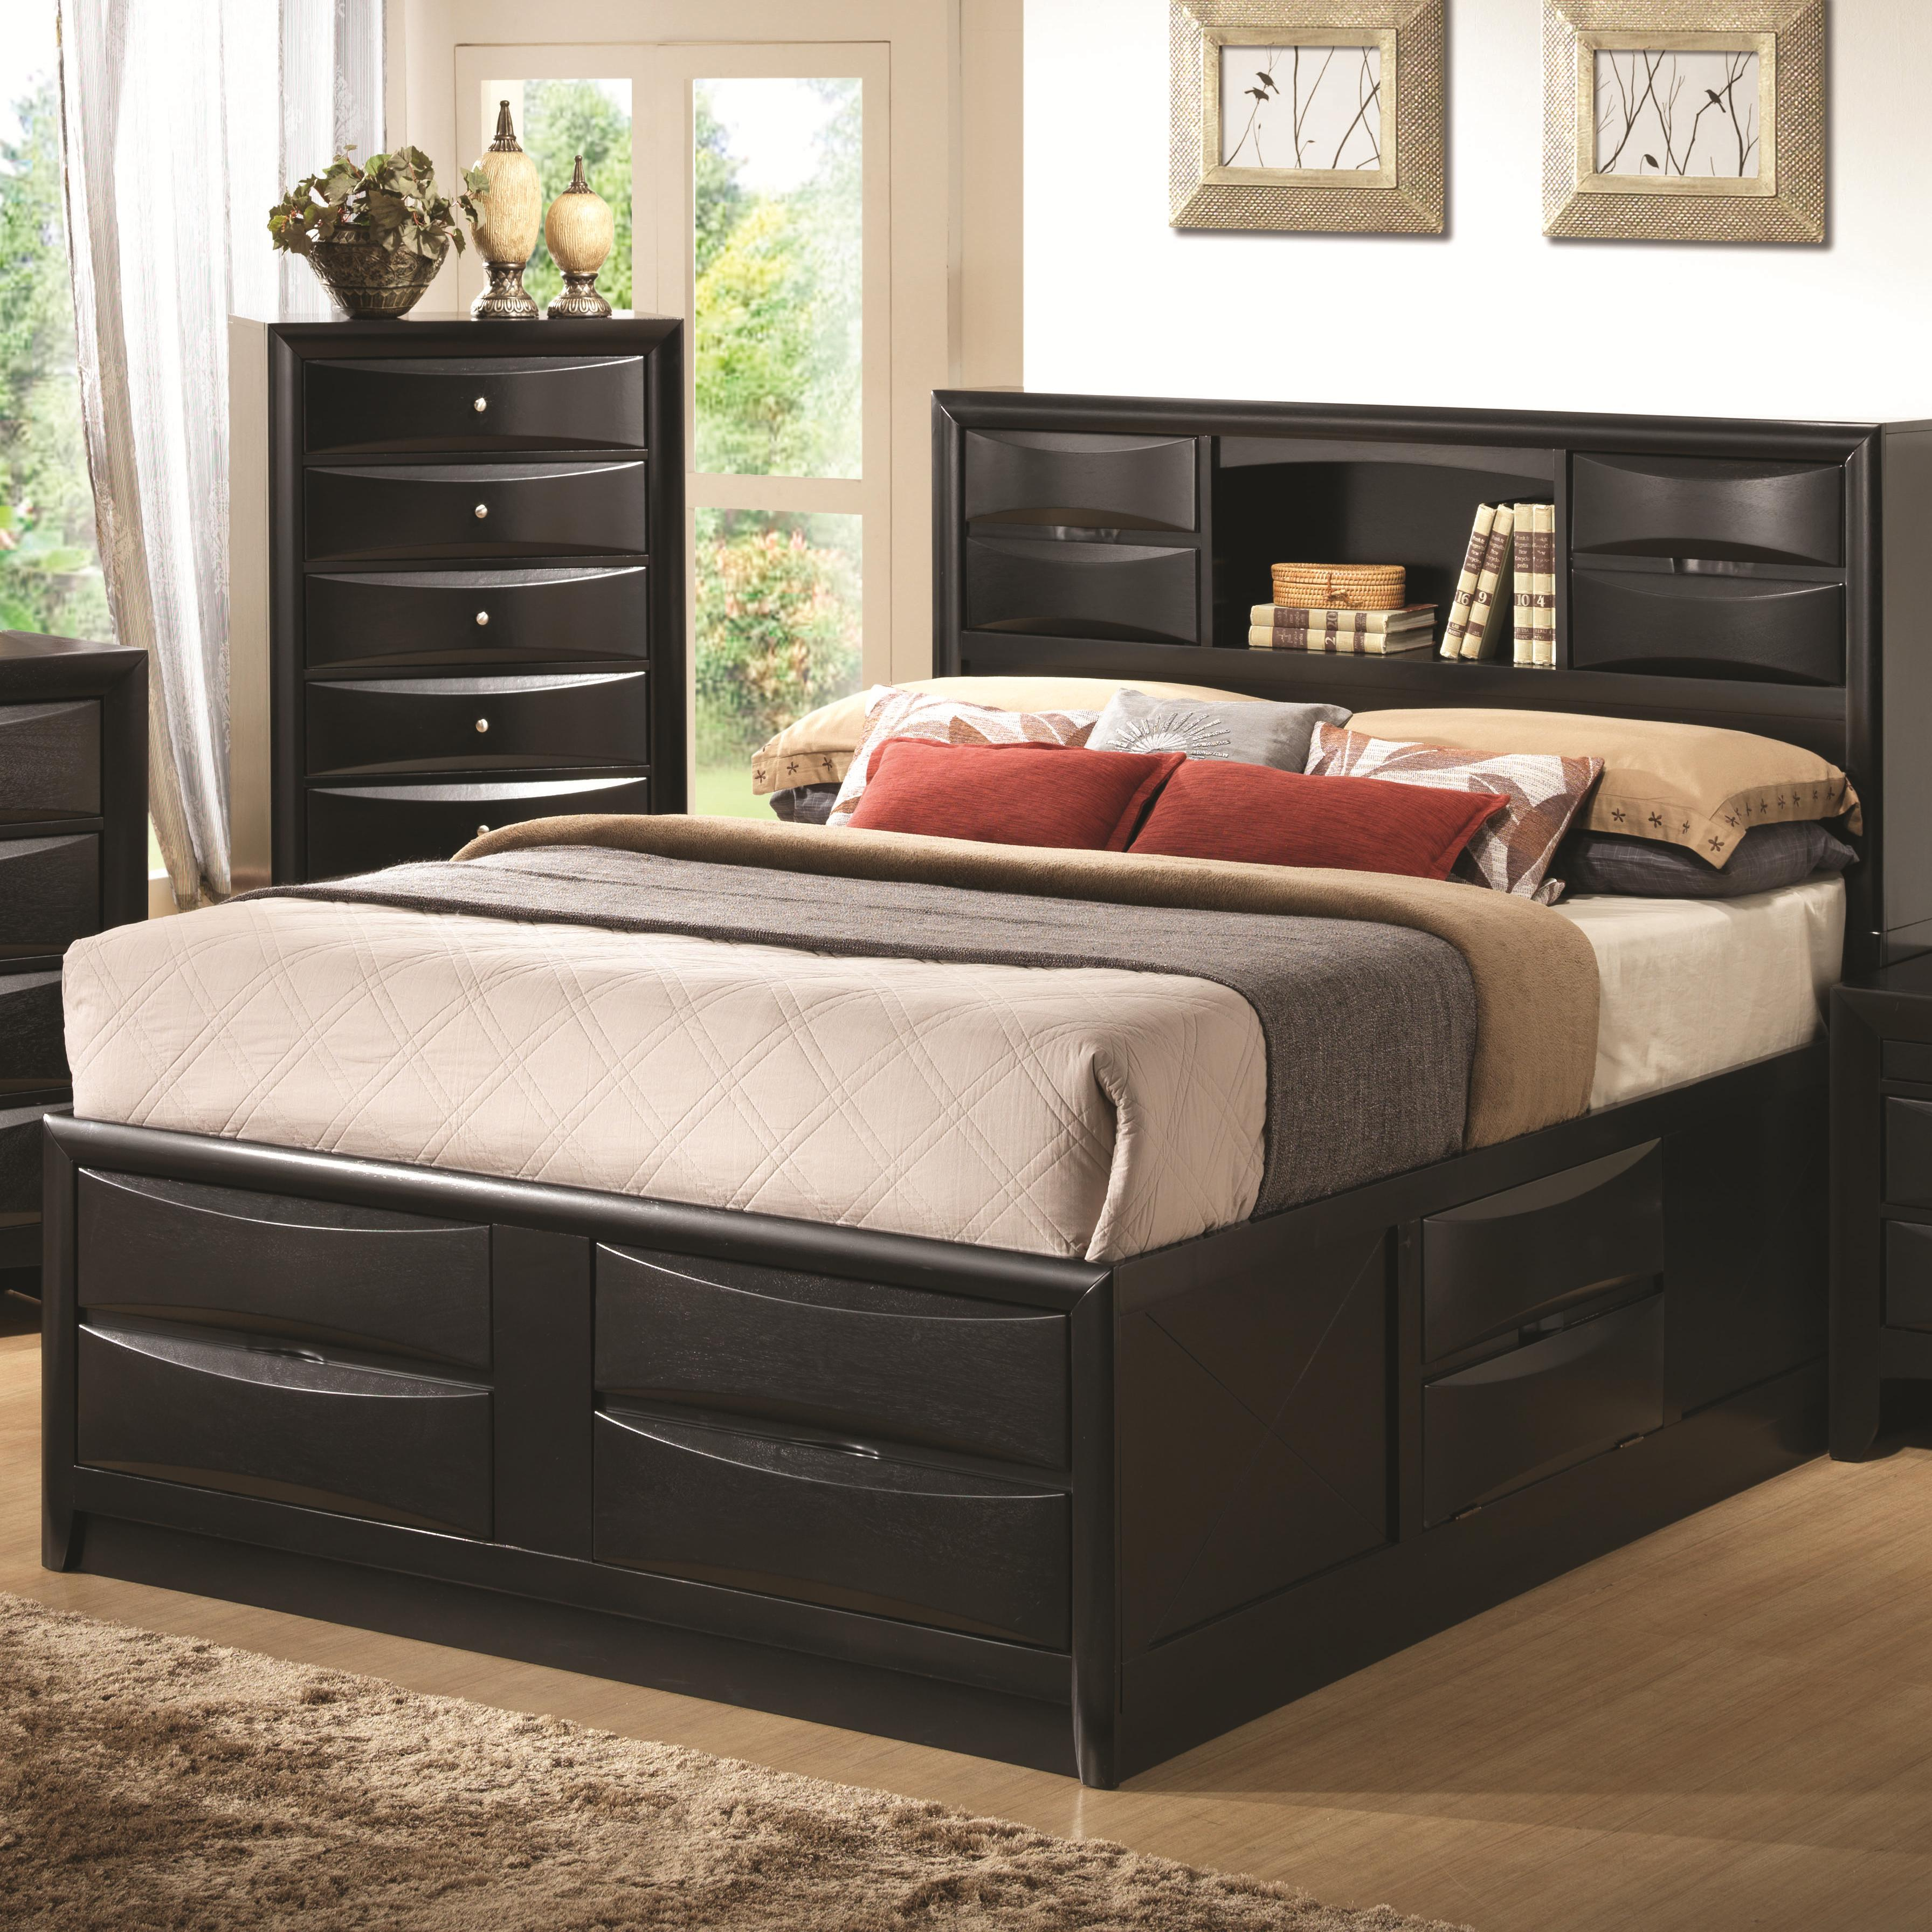 Briana King Storage Bed by Coaster at Northeast Factory Direct